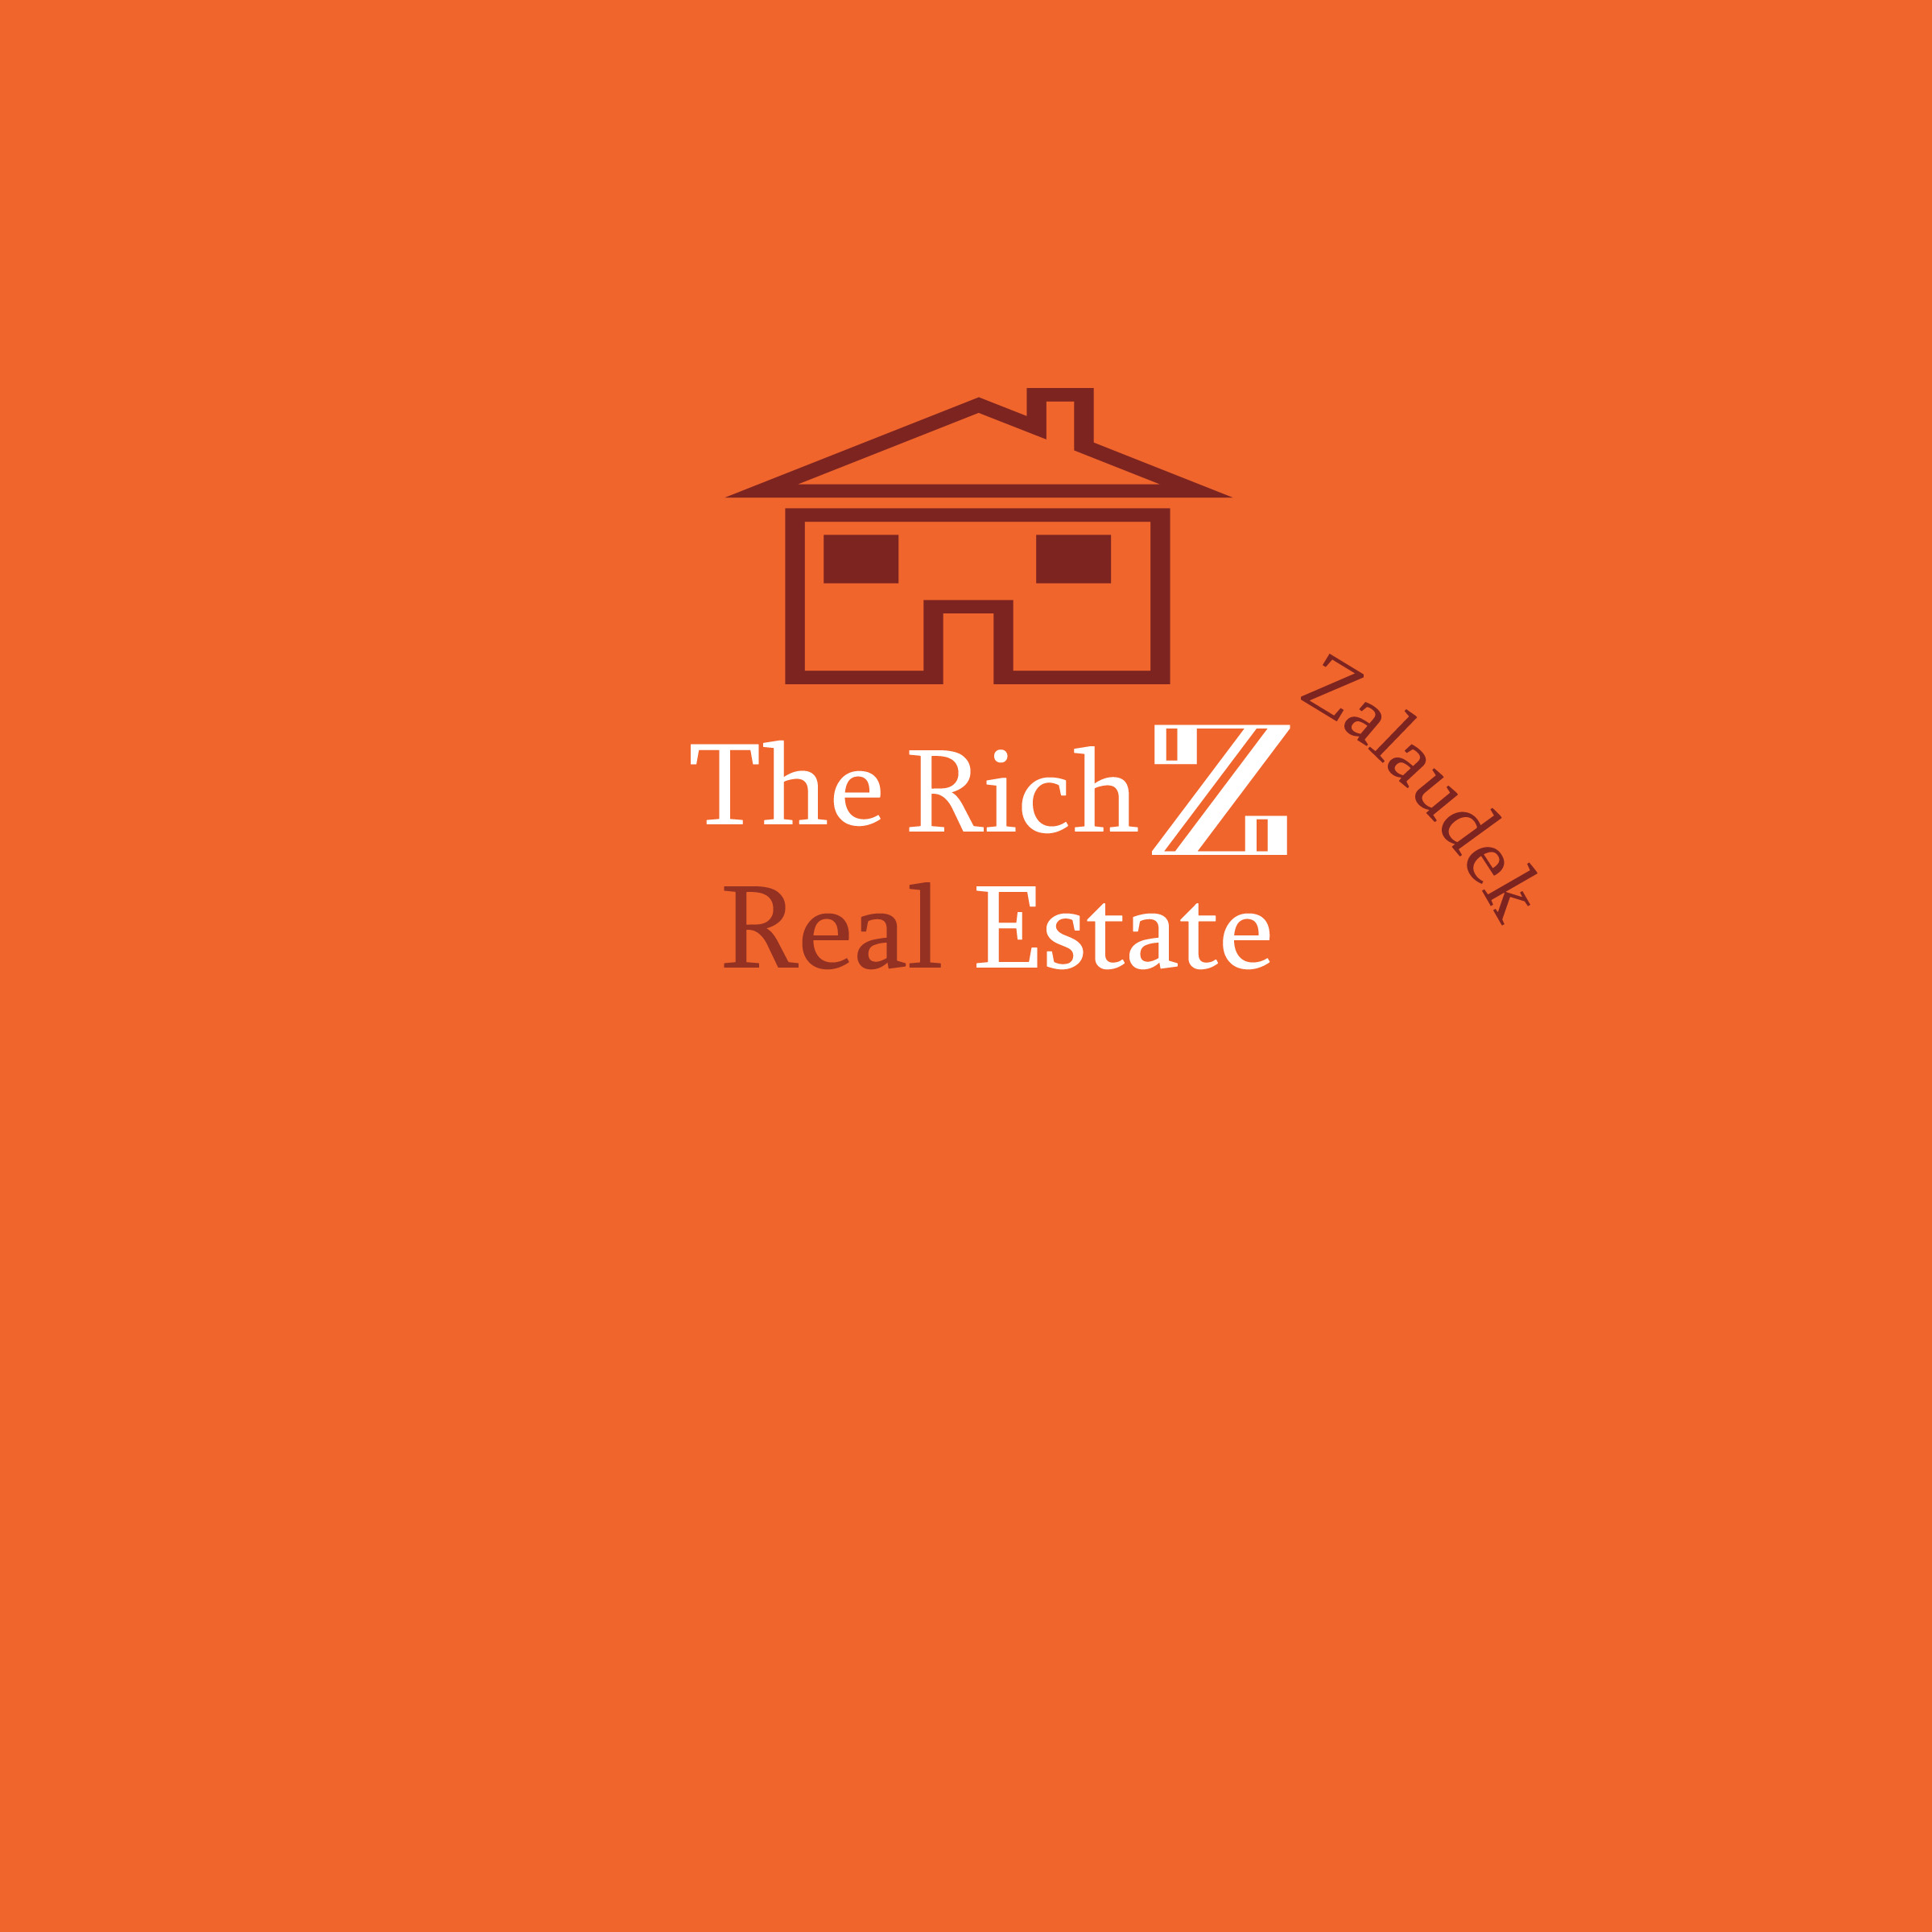 Logo Design by Laila Tariq - Entry No. 12 in the Logo Design Contest The Rich Z. Real Estate Group Logo Design.